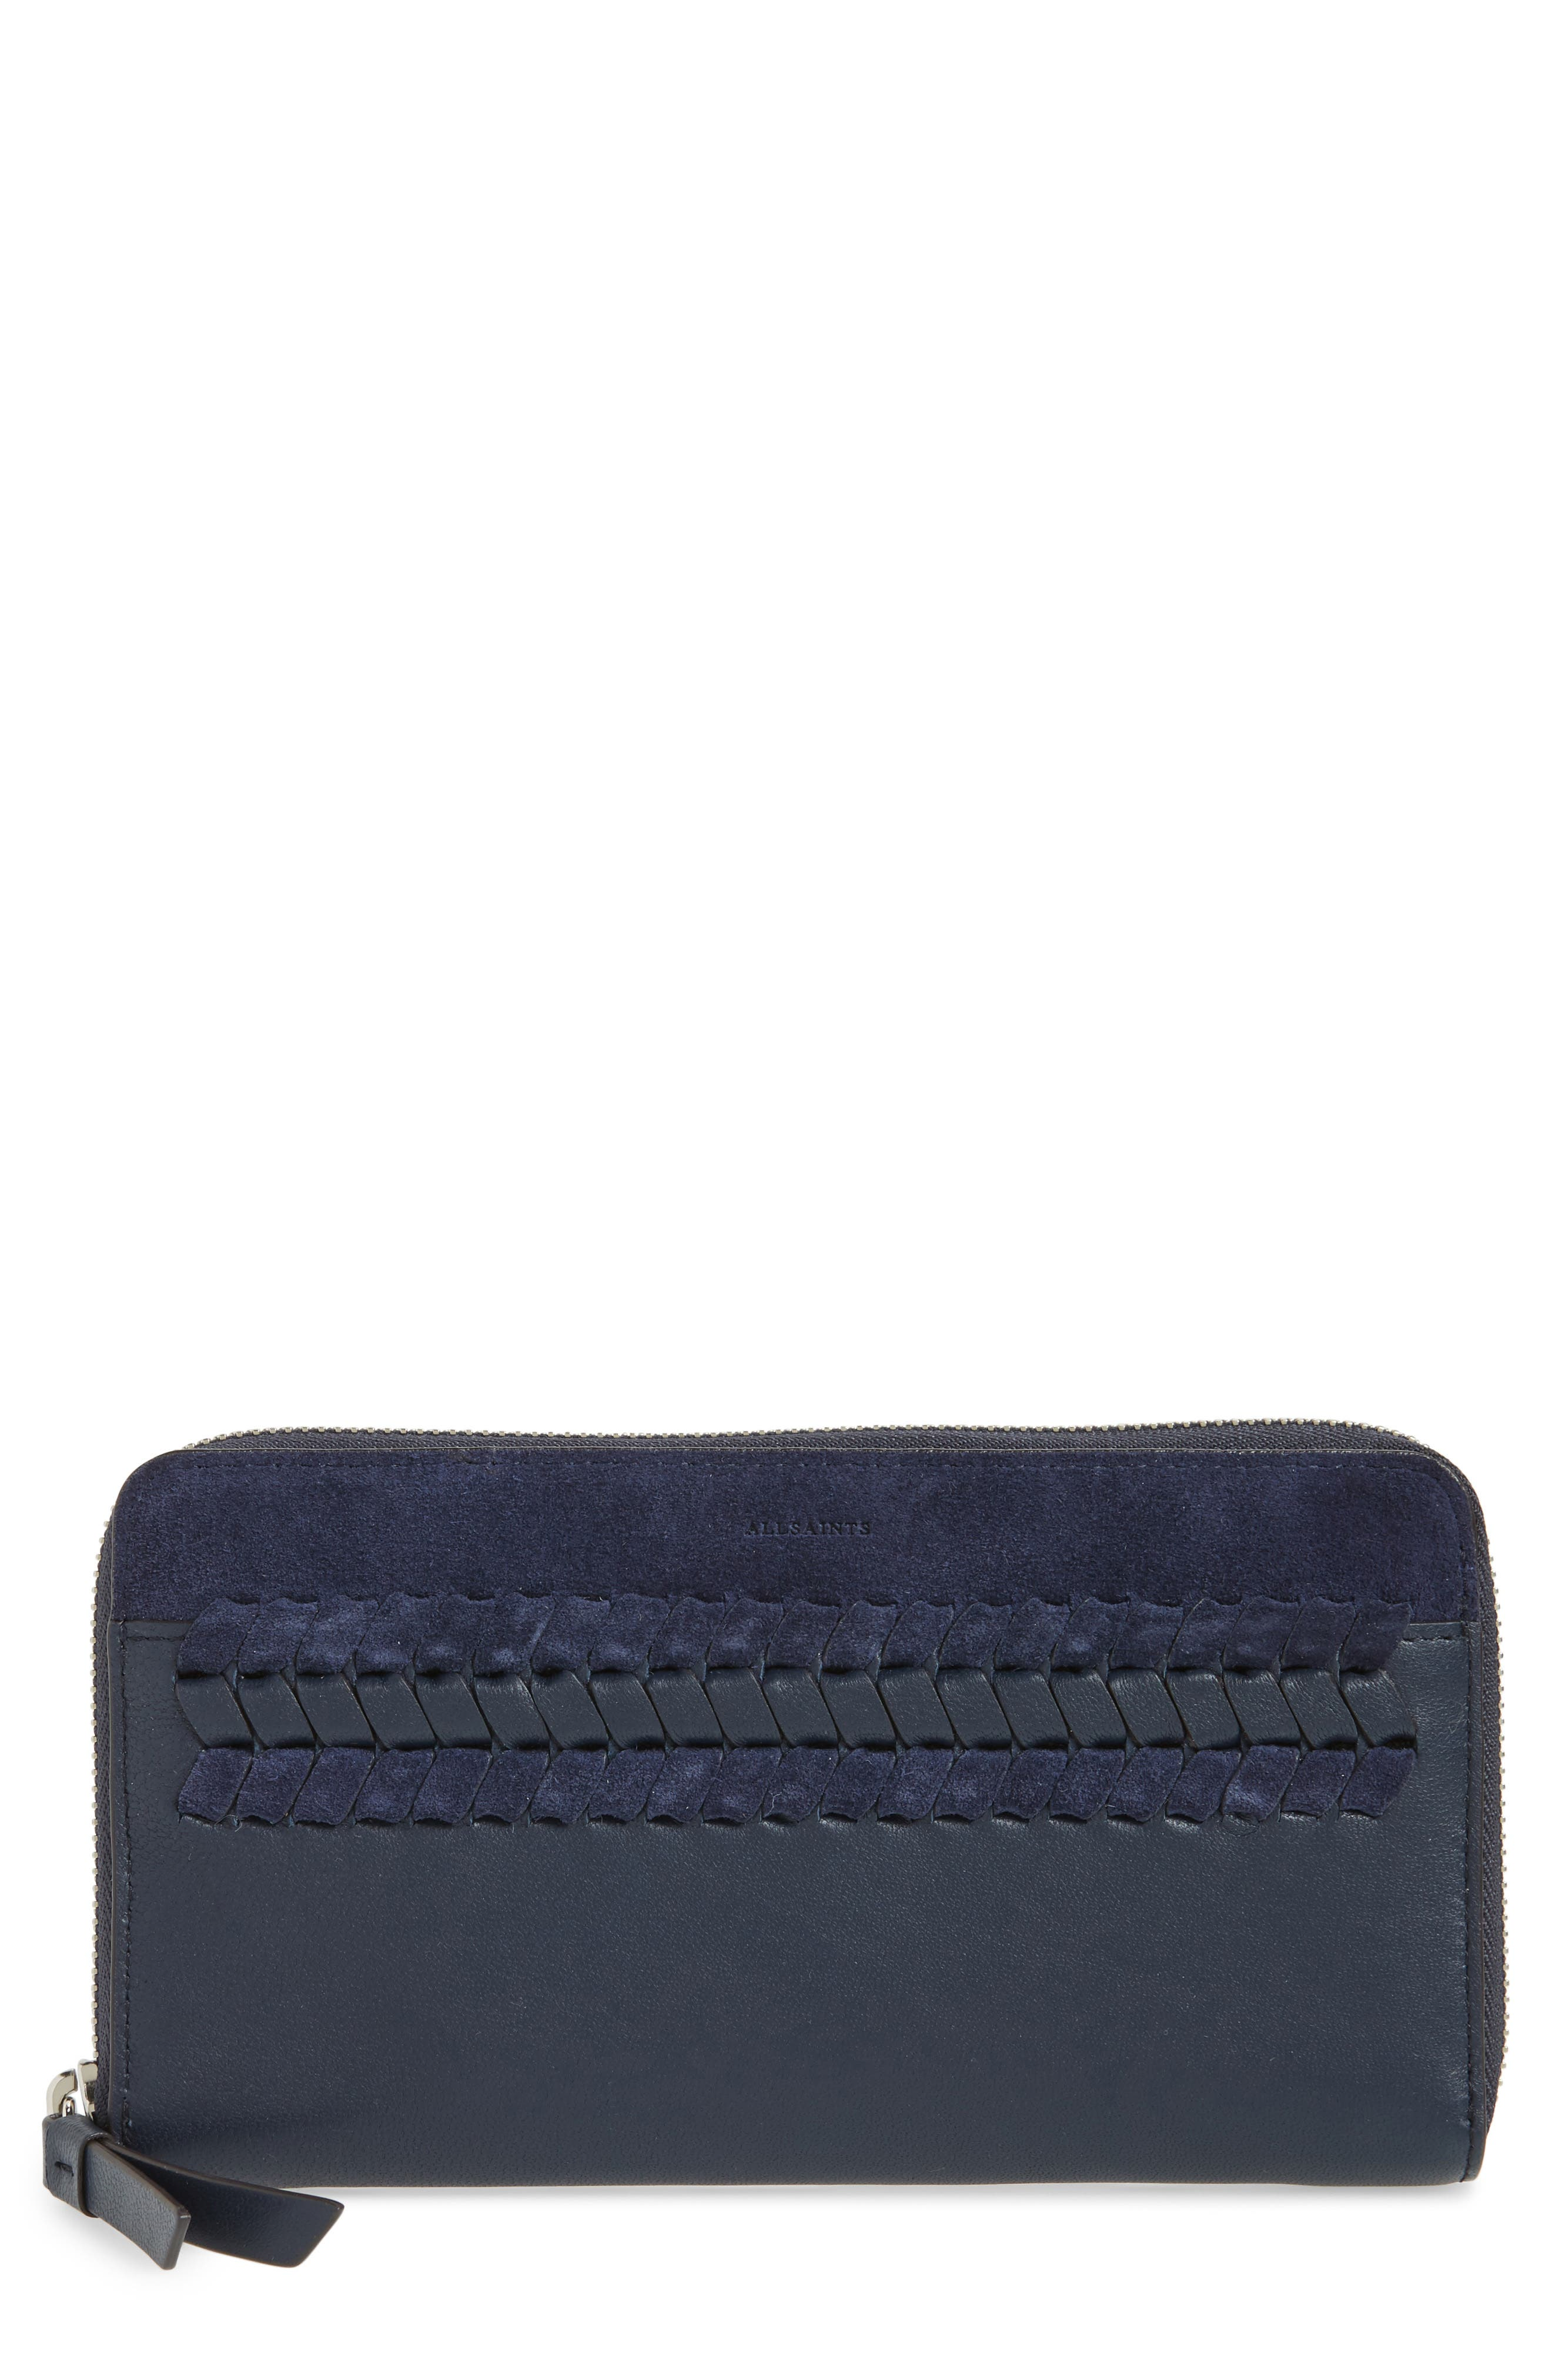 ALLSAINTS Ray Whip Leather & Suede Wallet